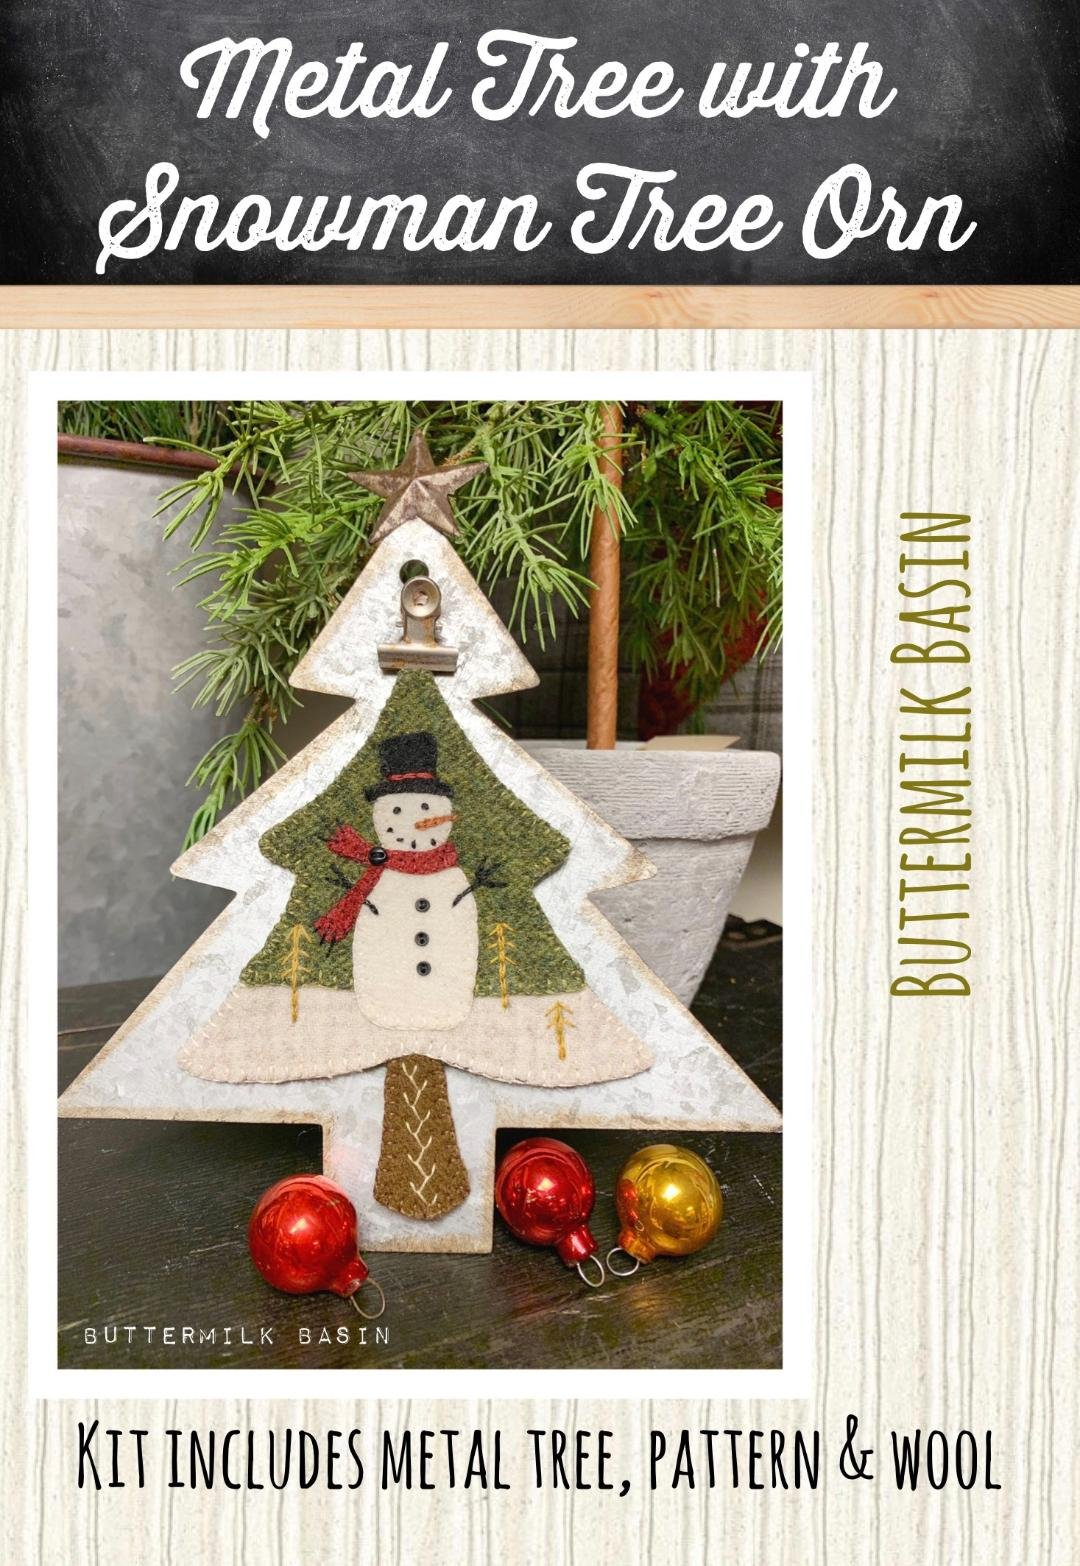 Metal Tree With Snowman Tree * Metal Tree Stand, KIT & Pattern Included